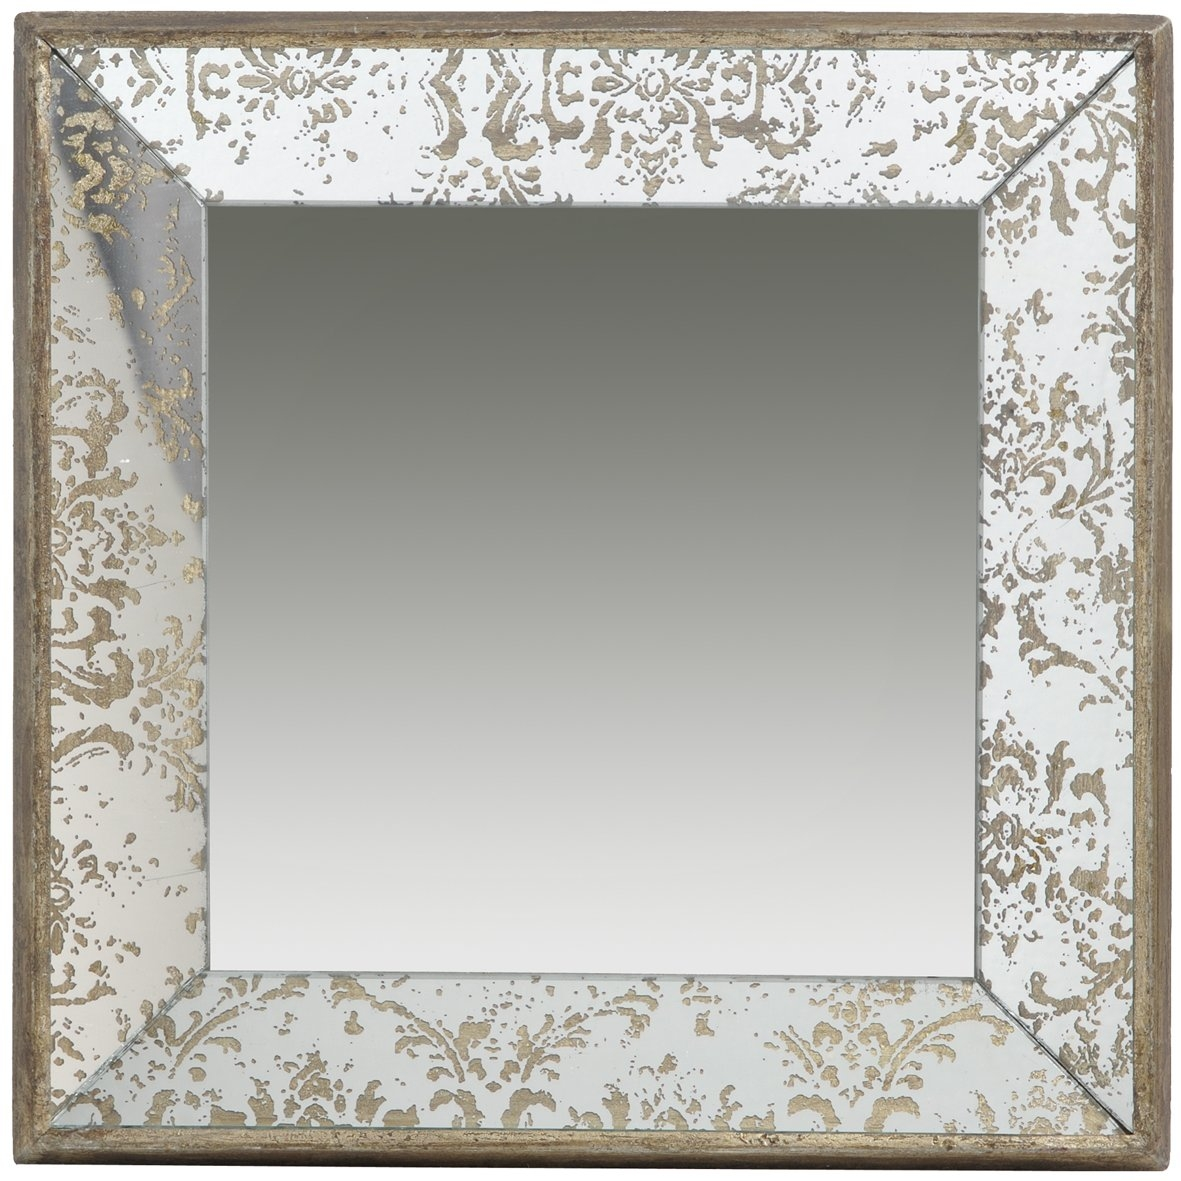 Lark Manor Zia Tray Square Wall Mirror Reviews Wayfair Regarding Square Wall Mirror (Image 11 of 15)